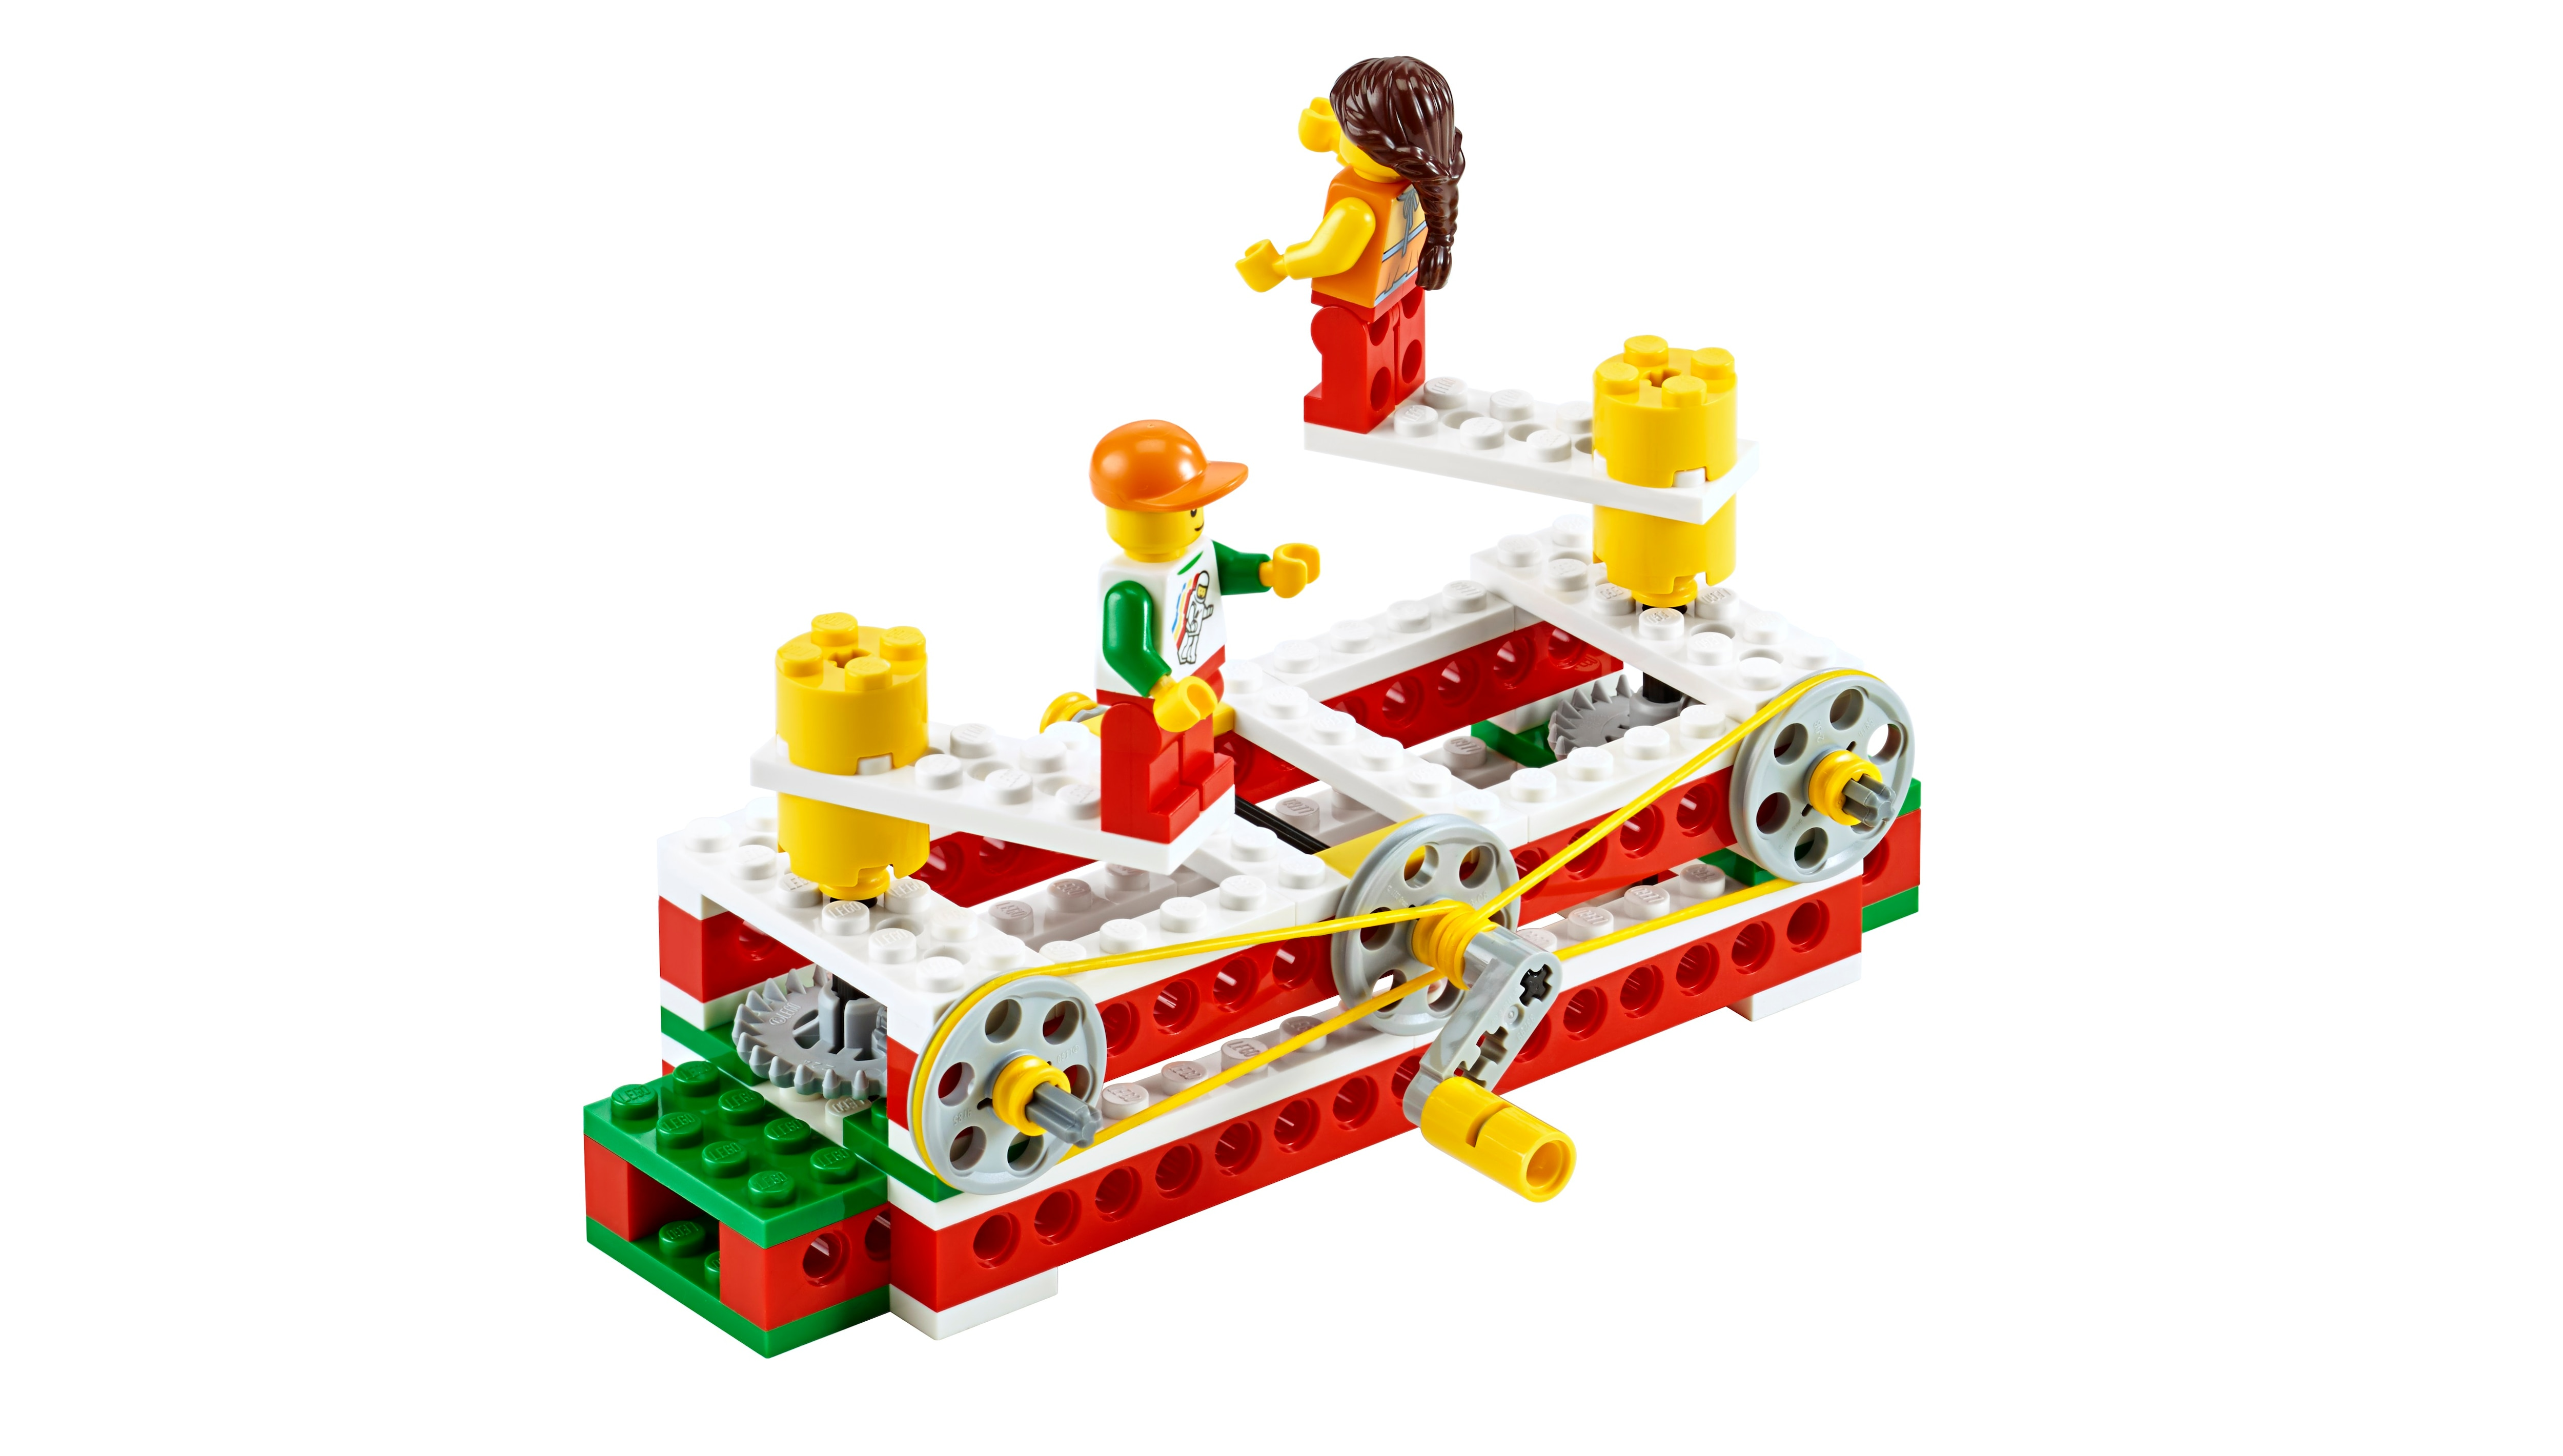 Simple Machines Primary School Lego Education